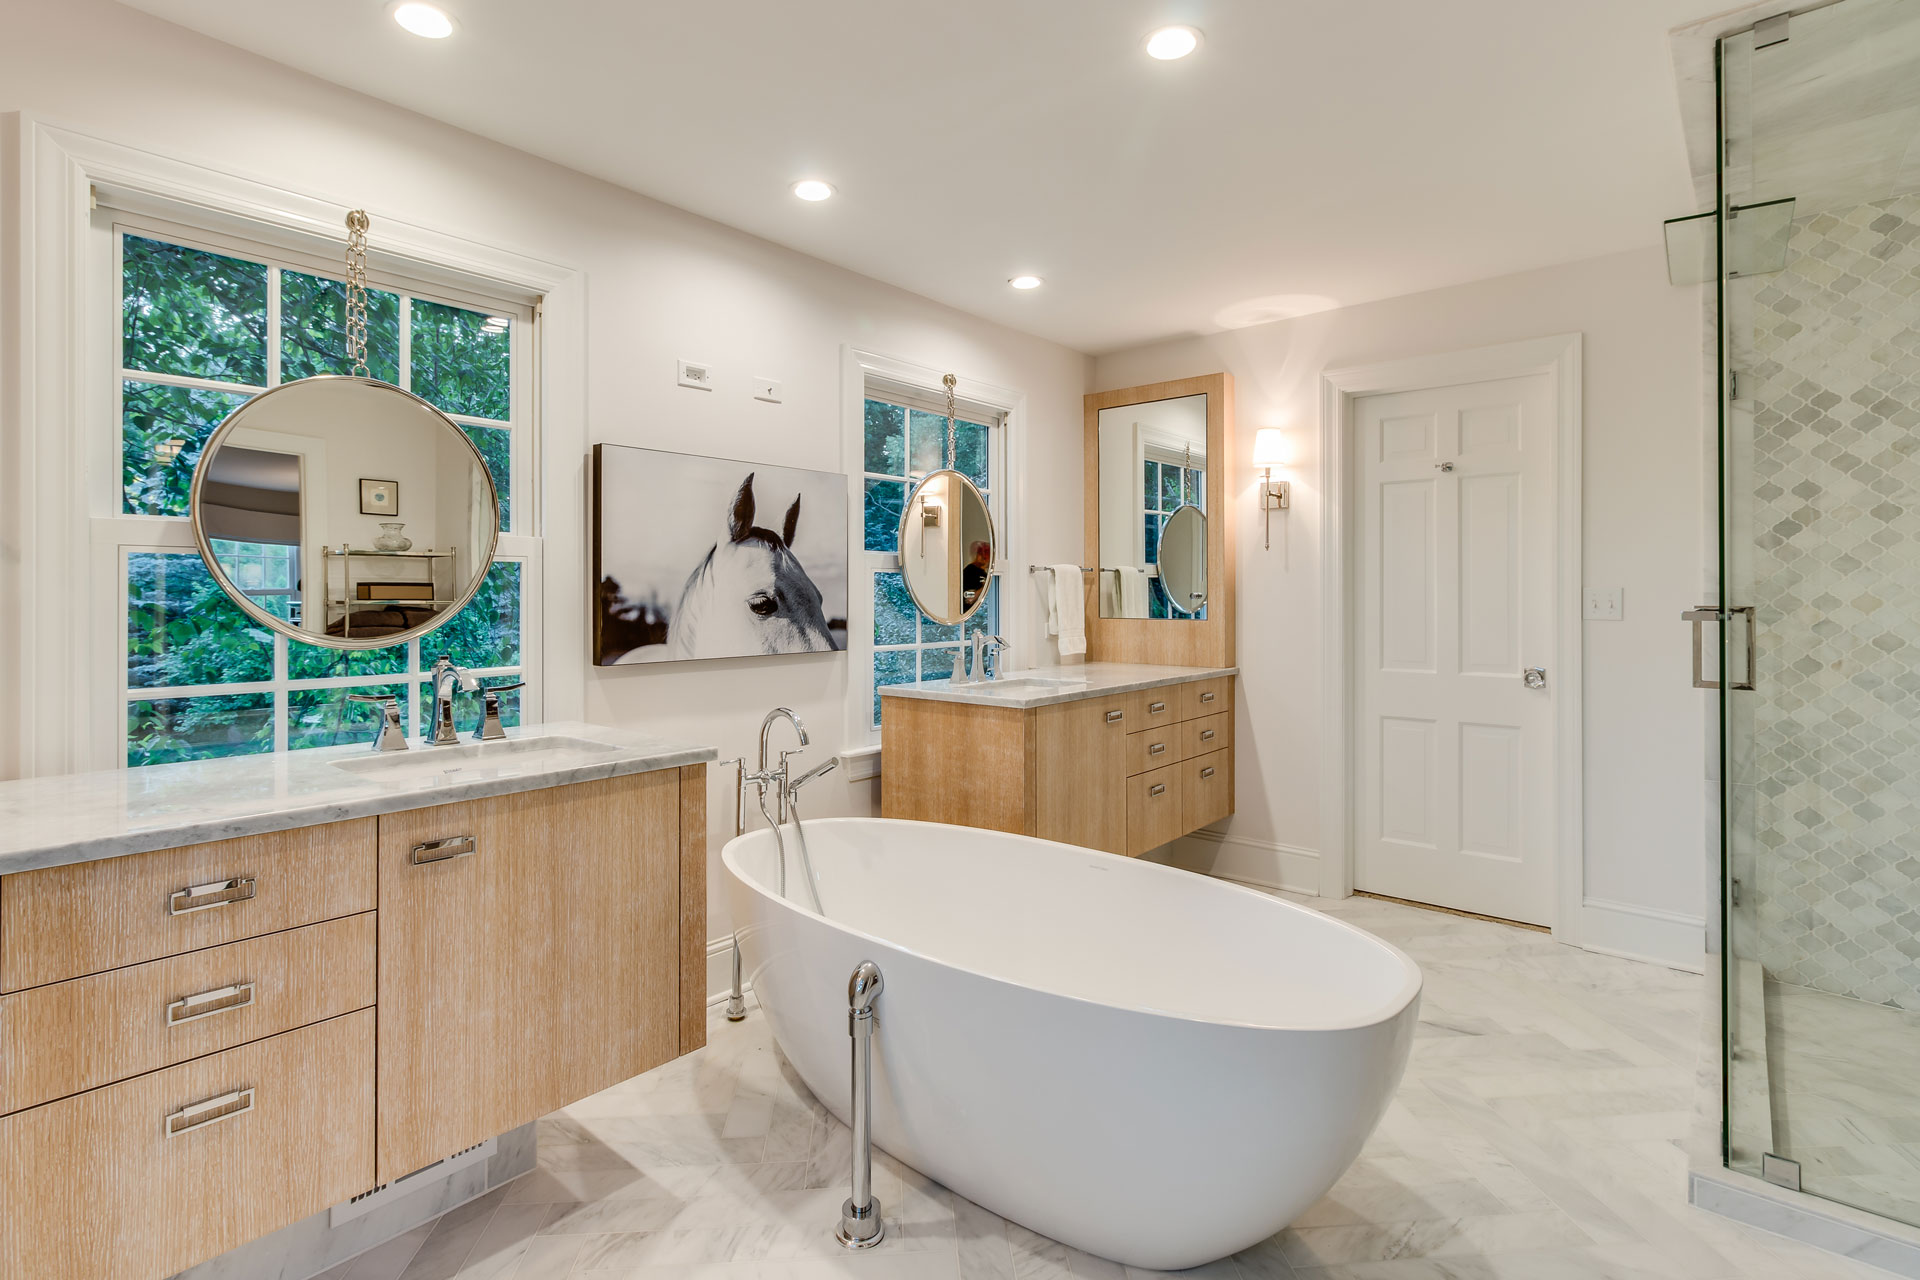 Refinished bathroom with large white tub in center, with symmetrical counter and cabinets on each side. Glass shower enclosure and gray and white tiles.